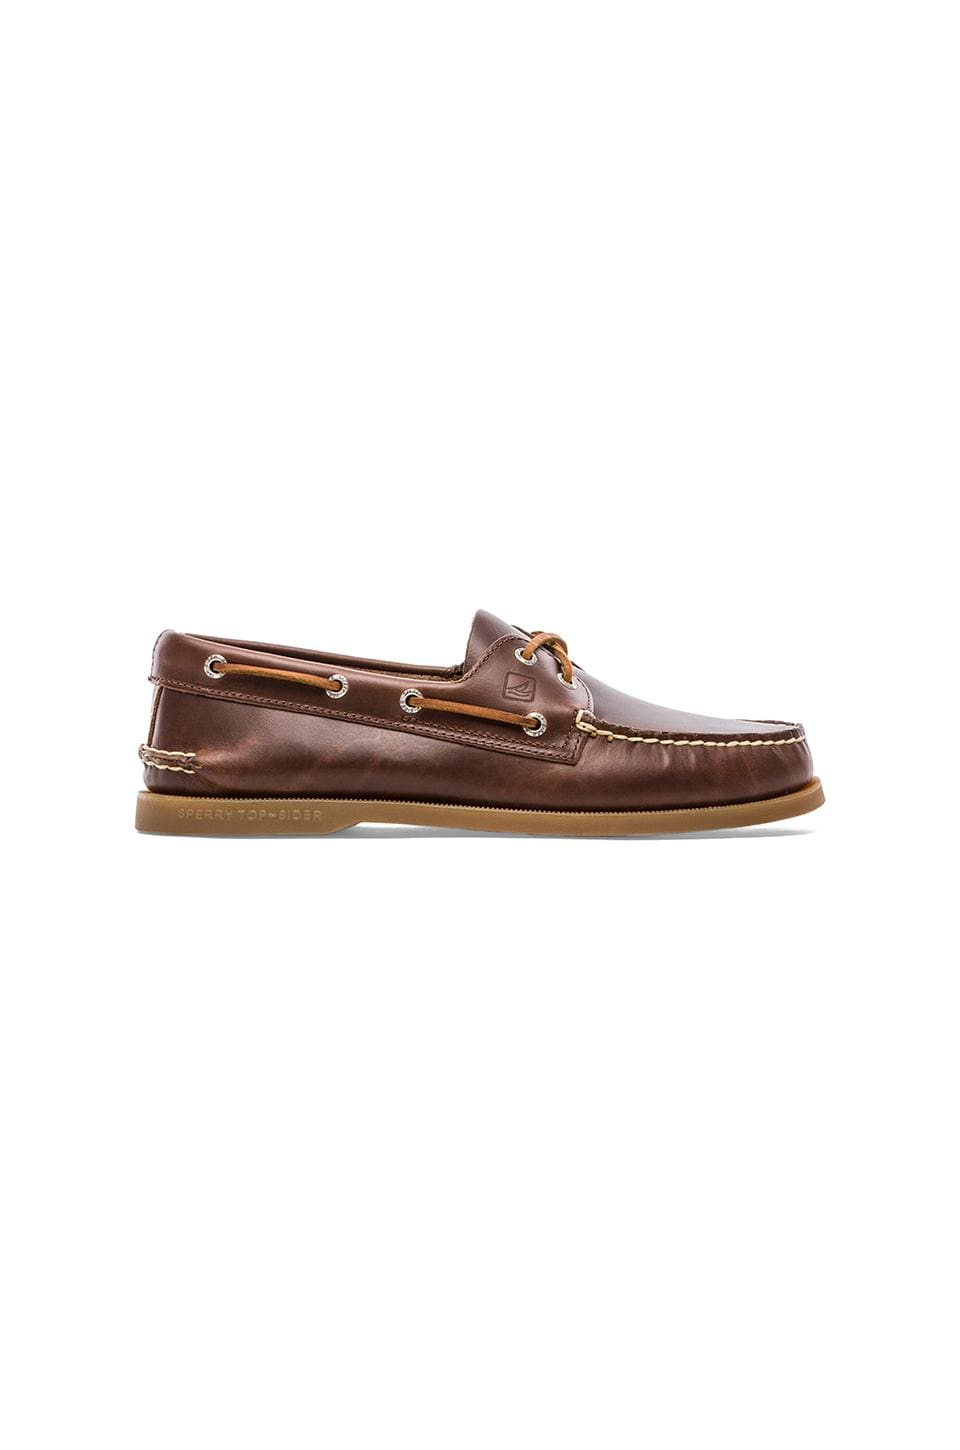 Sperry Top-Sider A/O 2-Eye Cyclone in Brown